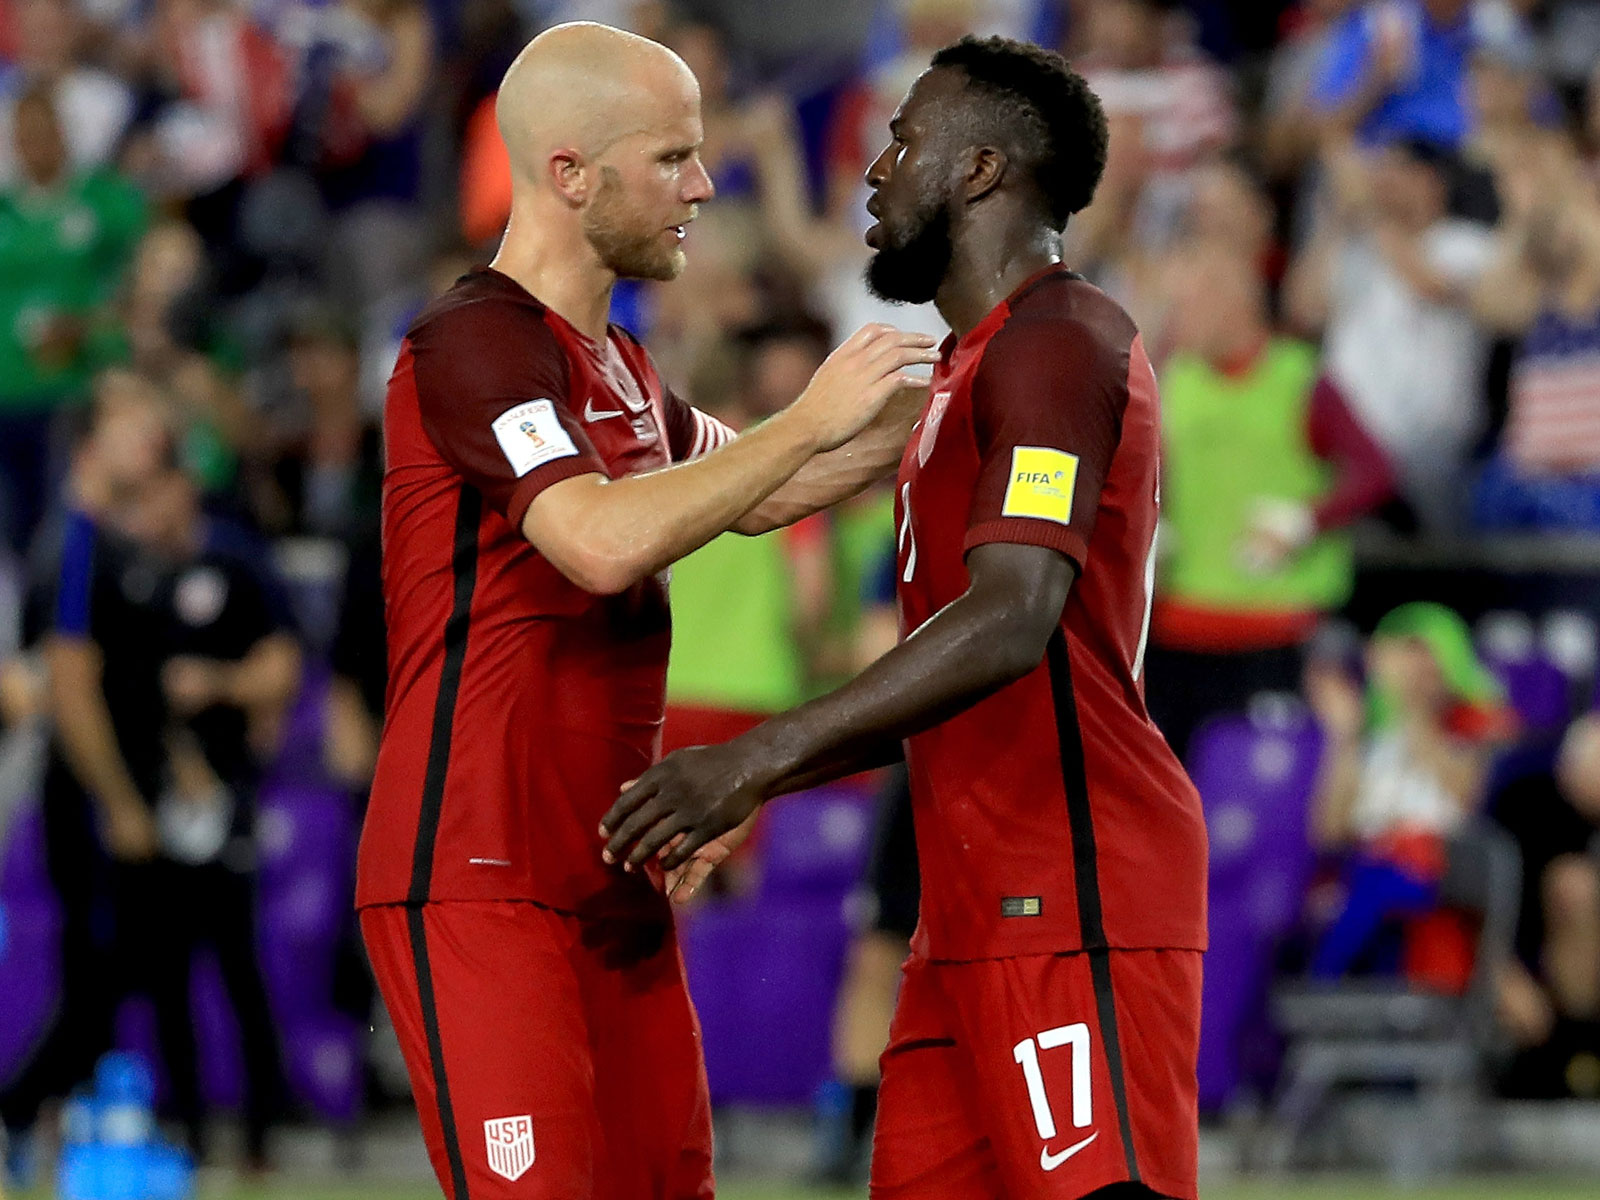 Jozy Altidore and Michael Bradley may still have futures with the U.S. national team